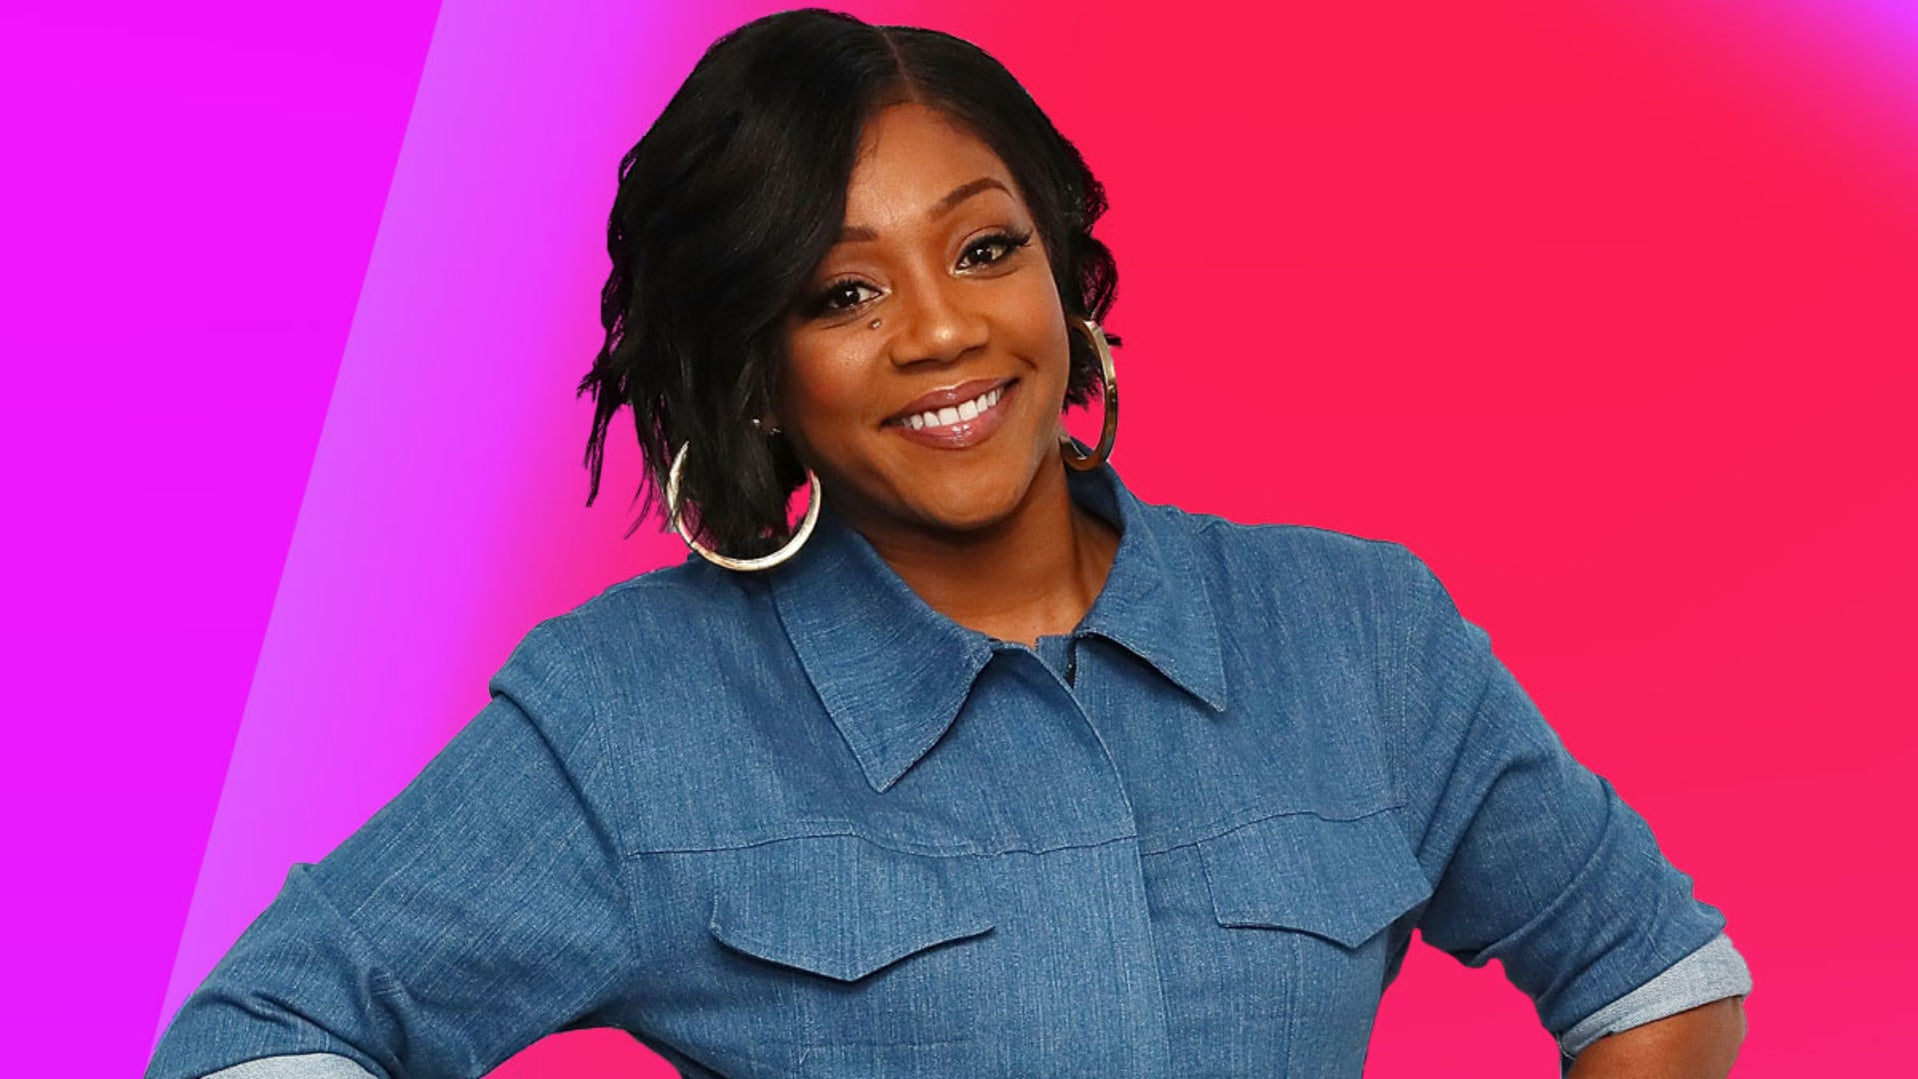 Tiffany Haddish Is Launching A Comedy Series With Netflix